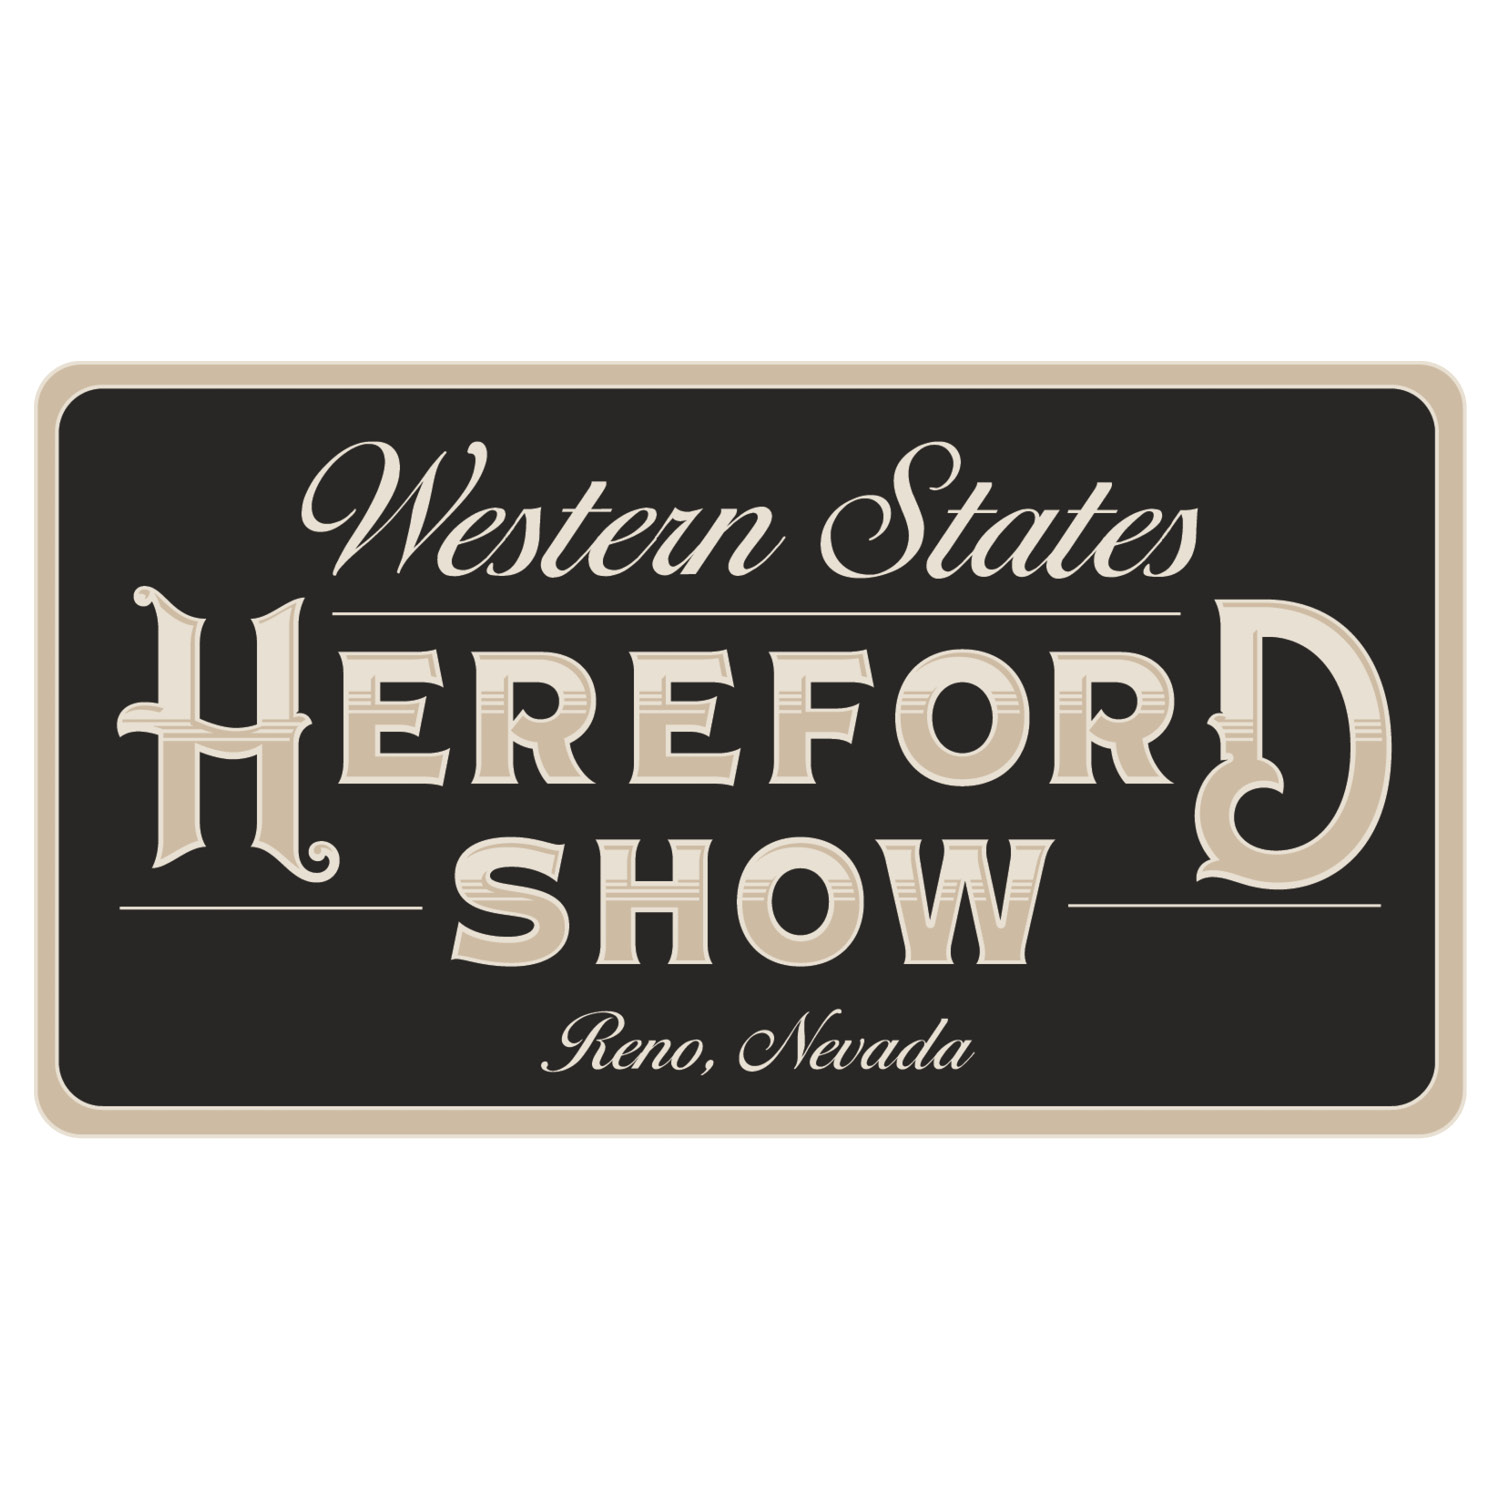 American Hereford | National Shows - American Hereford